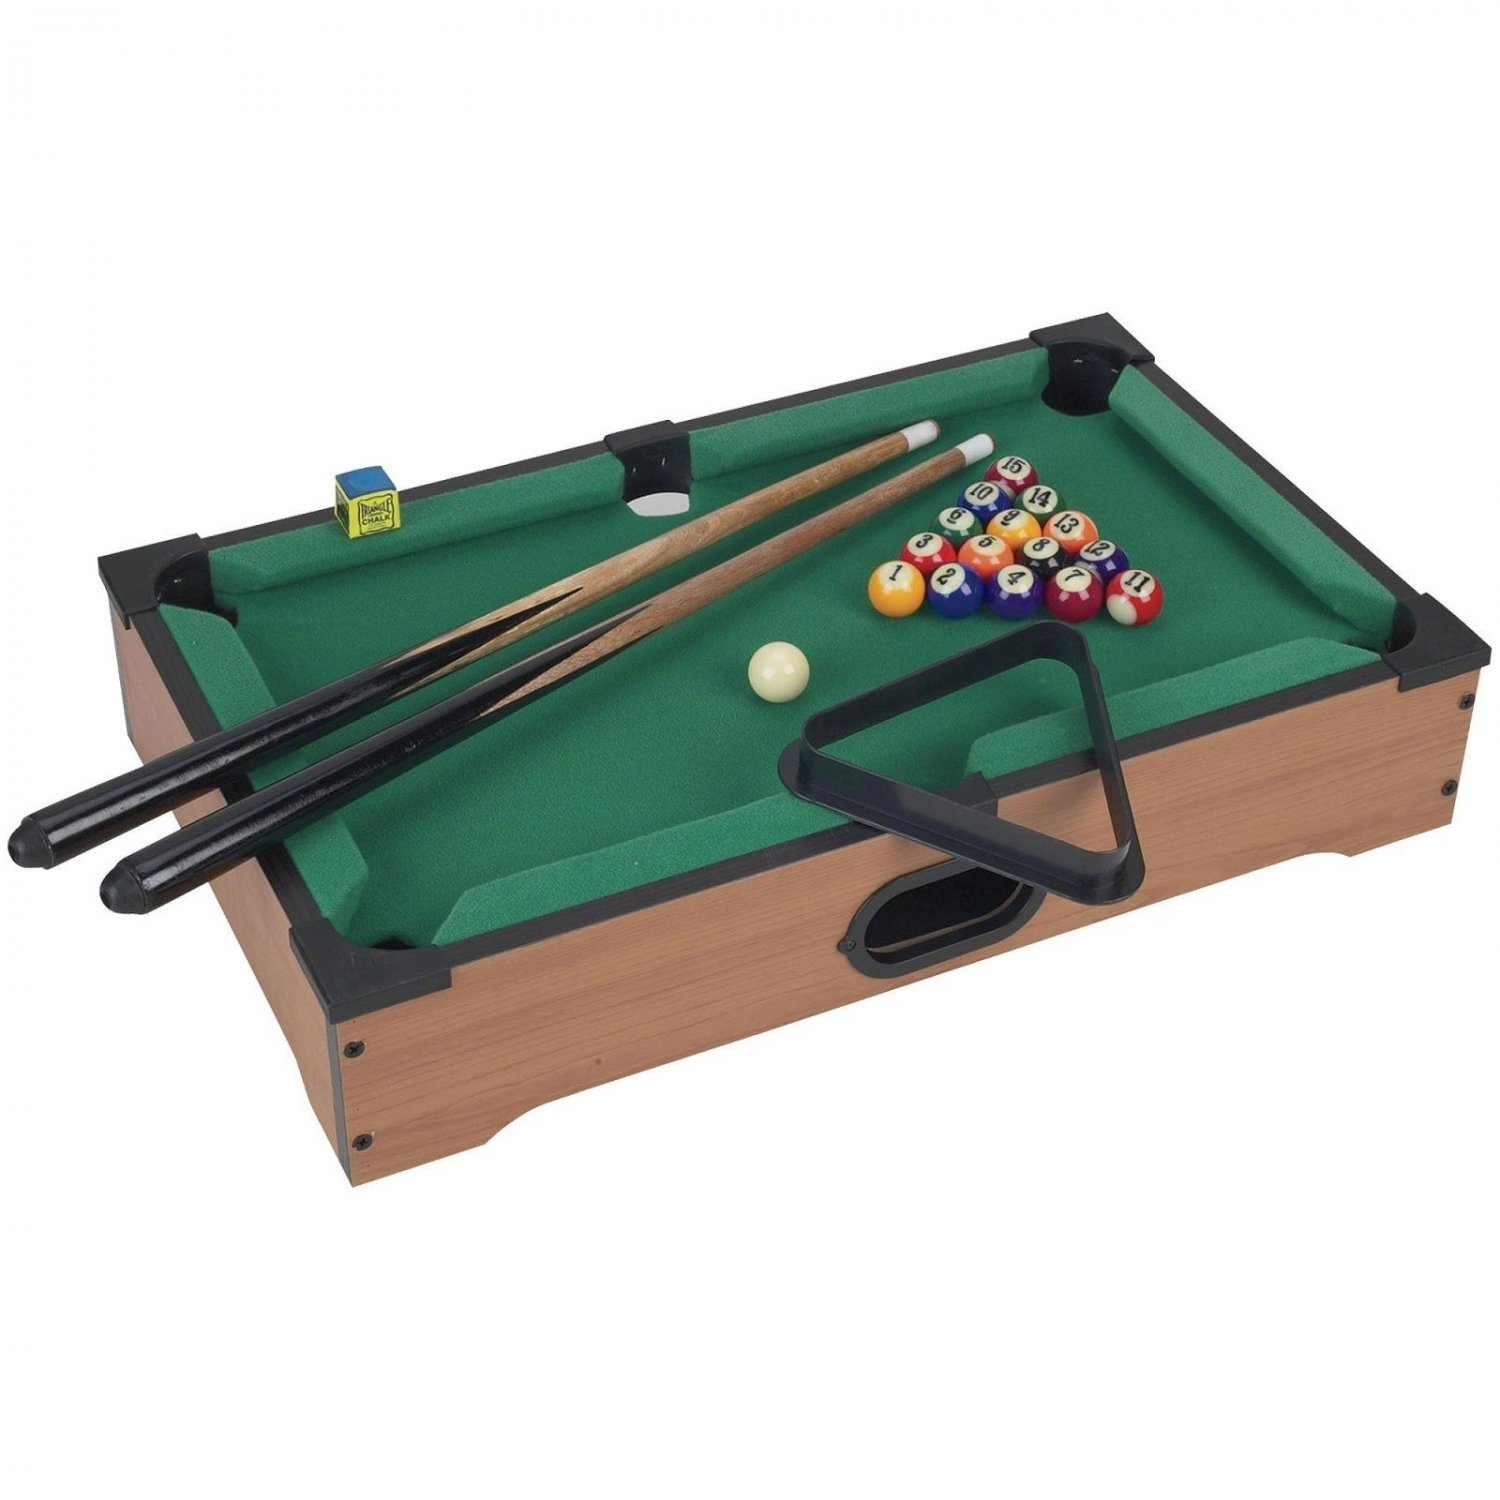 Mini Table Top Pool Table with Cues, Triangle Chalk 1 fathers day gifts Set